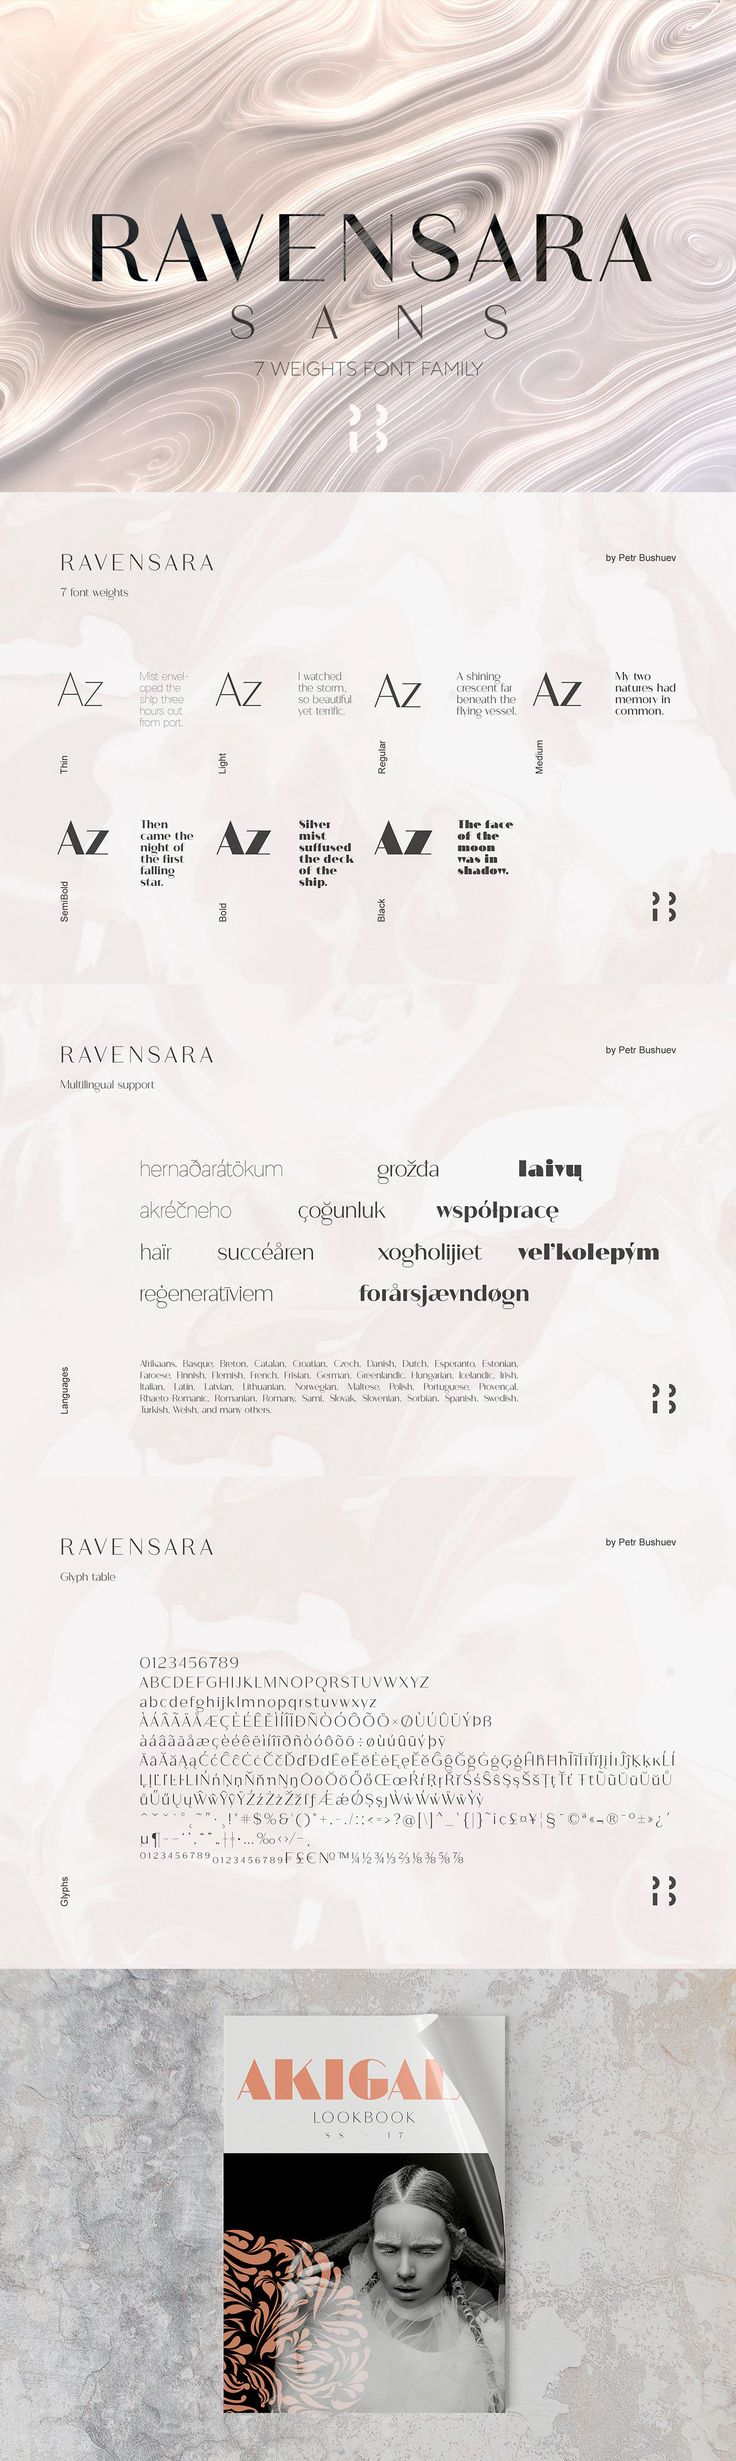 Ravensara Sans - Ravensara is a contemporary, high contrast, sans-serif font family that contains 7 weight ...